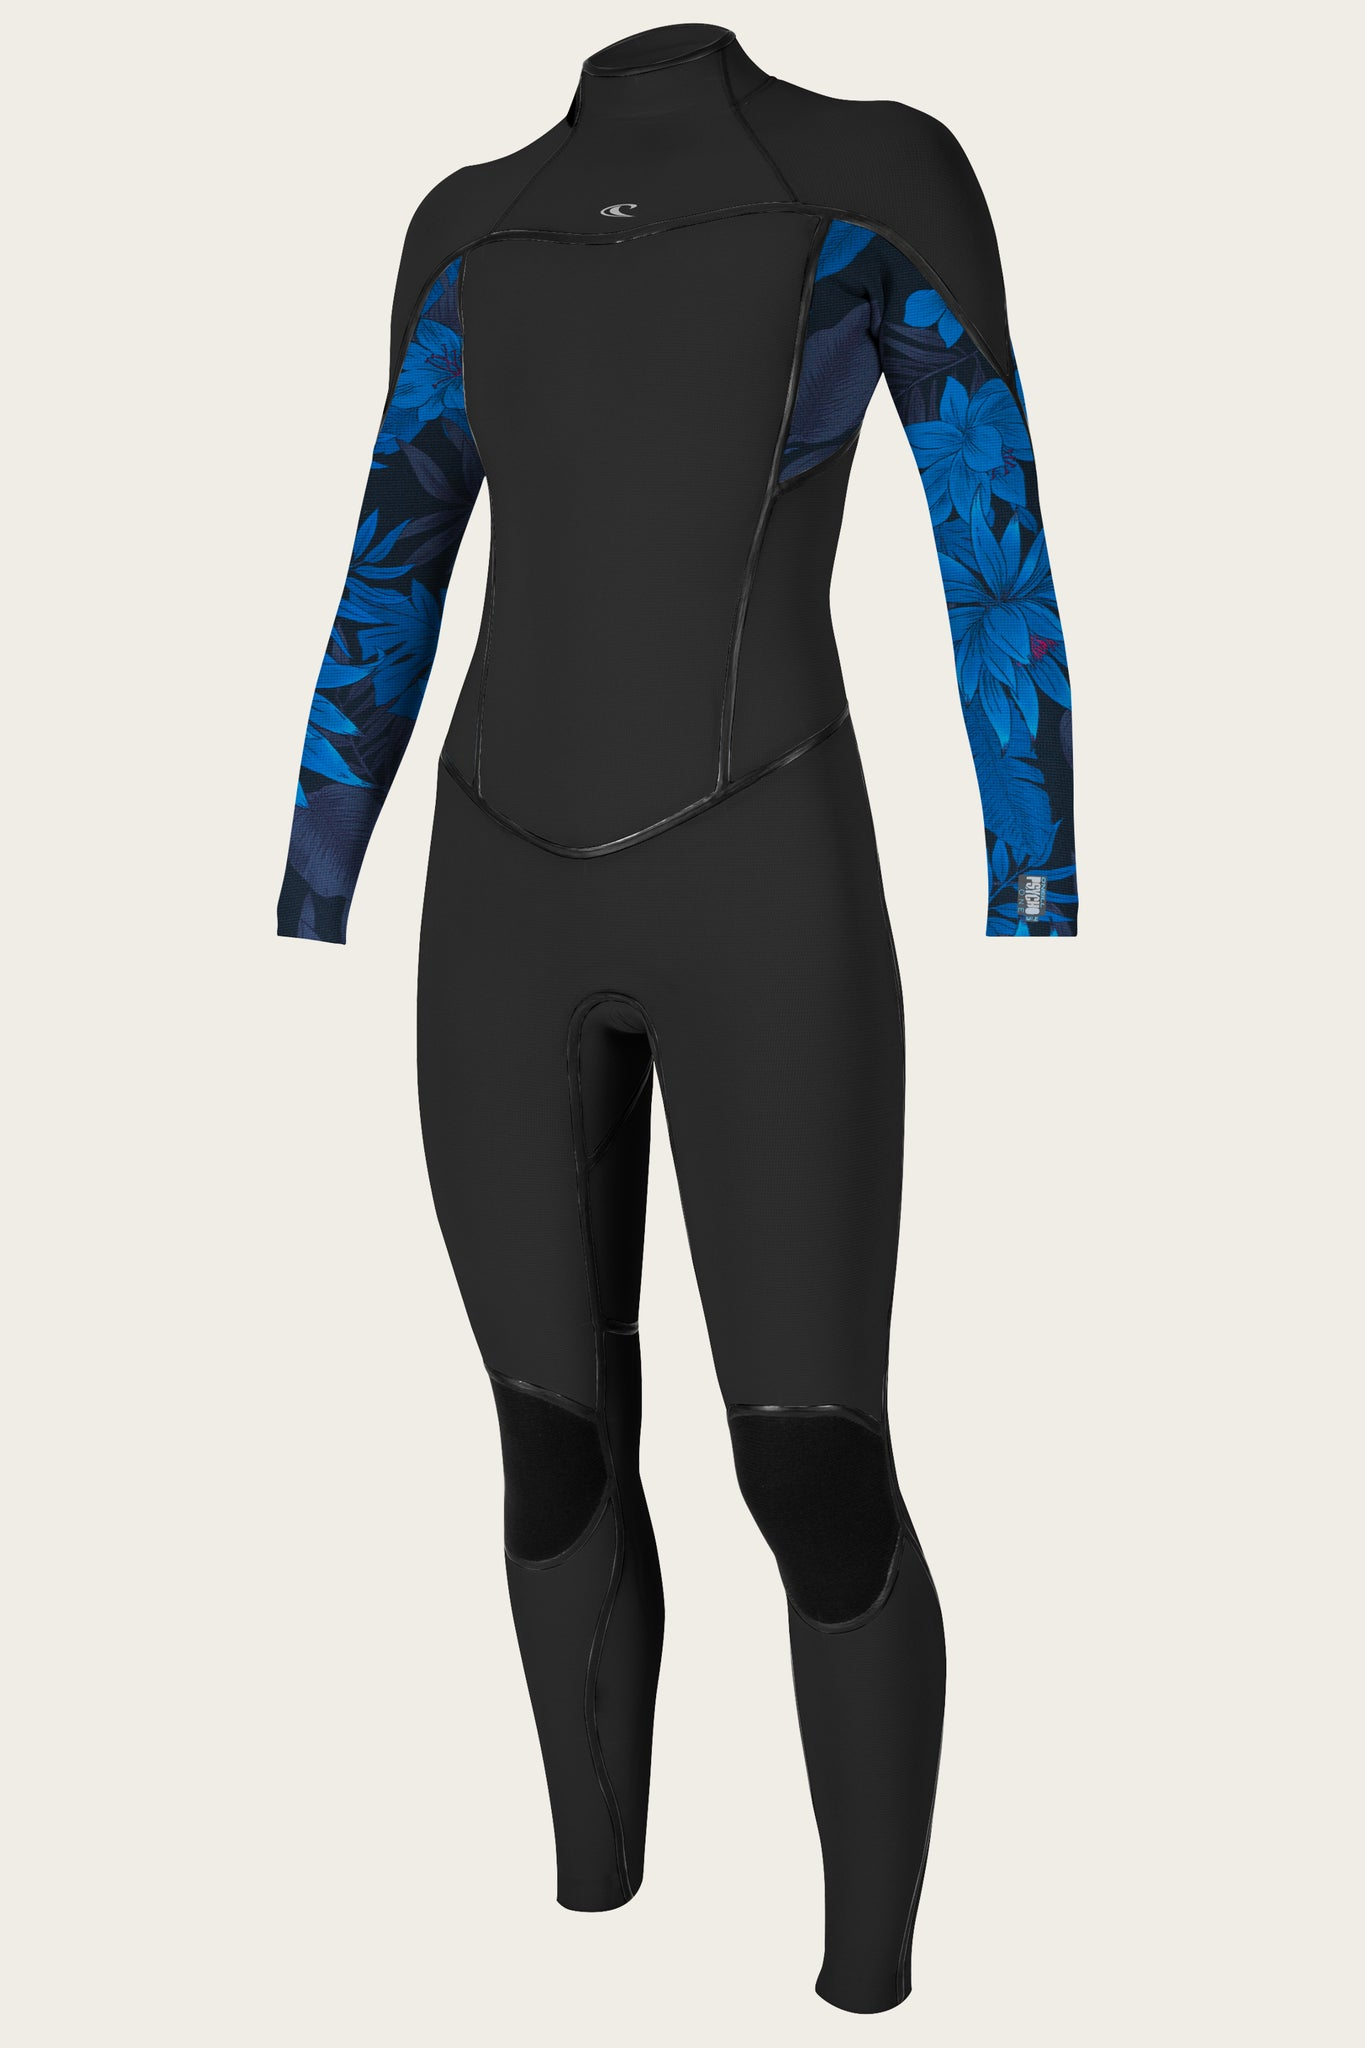 Women'S Psycho One 3/2Mm Back Zip Full Wetsuit - Black/Bluefaro/Black | O'Neill